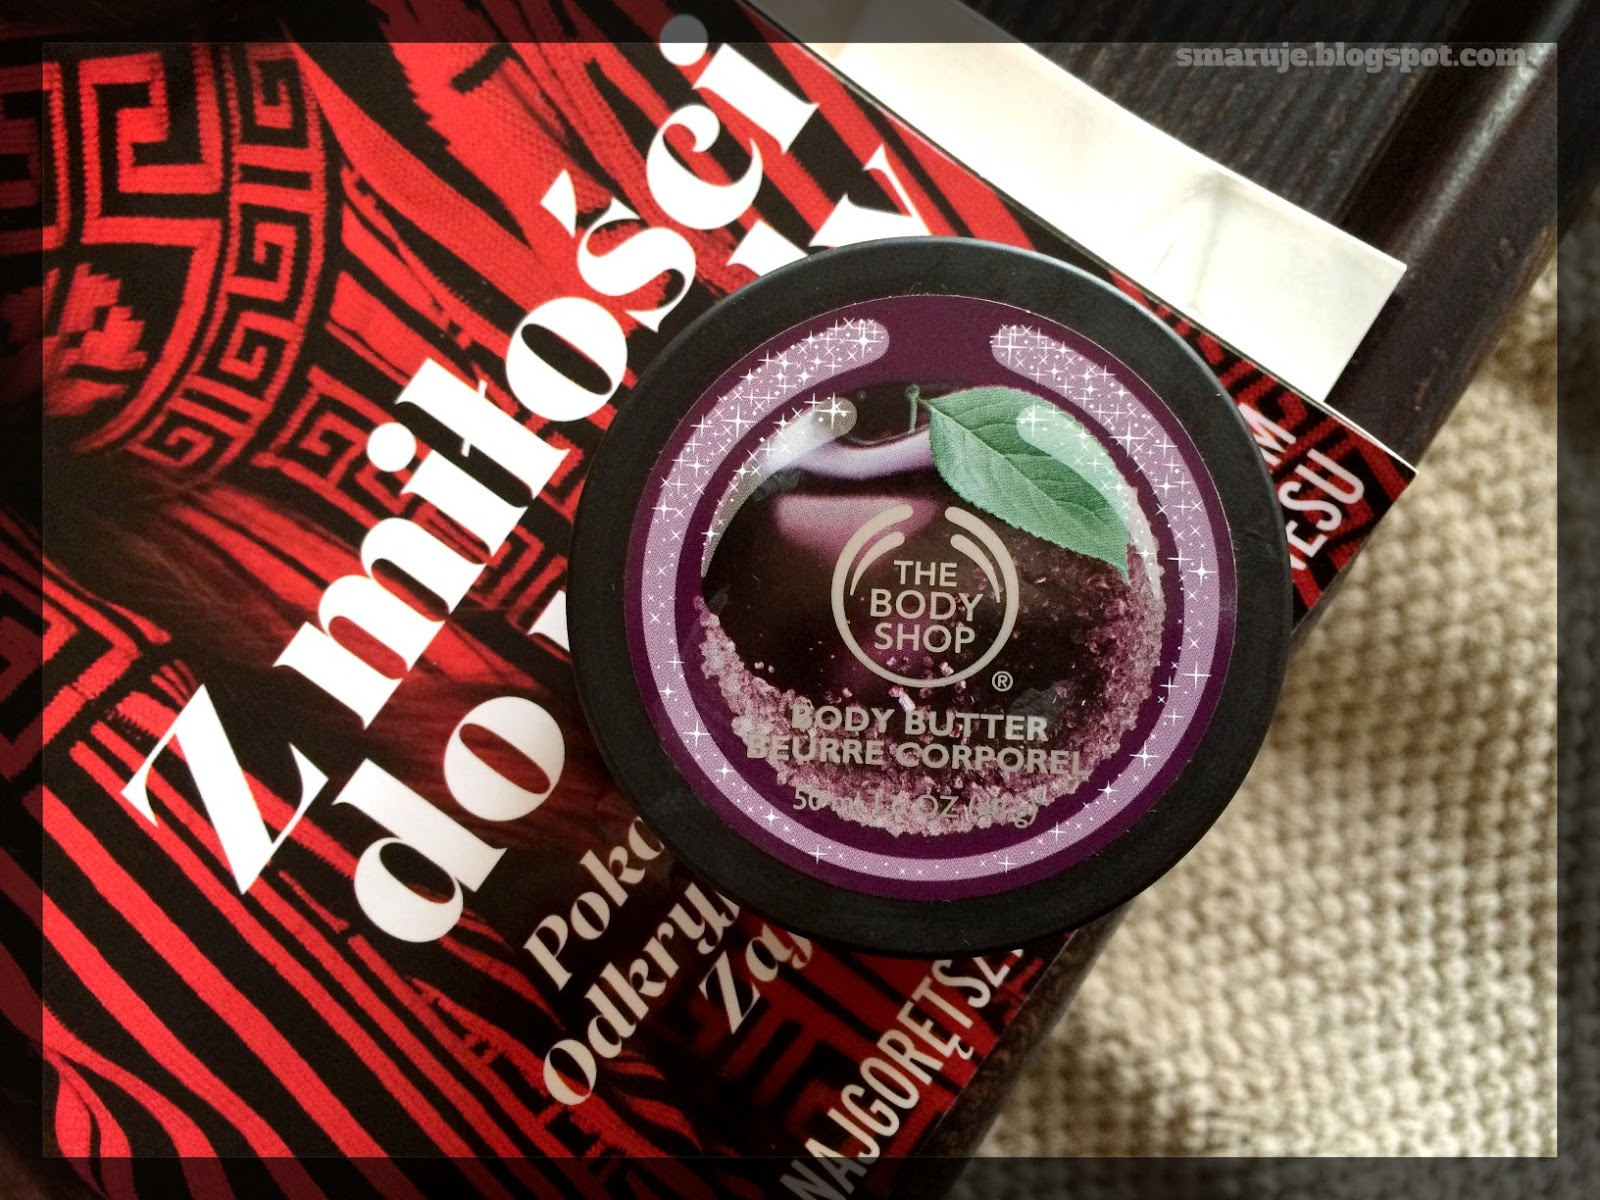 The Body Shop – Frosted Plum Body Butter /recenzja/